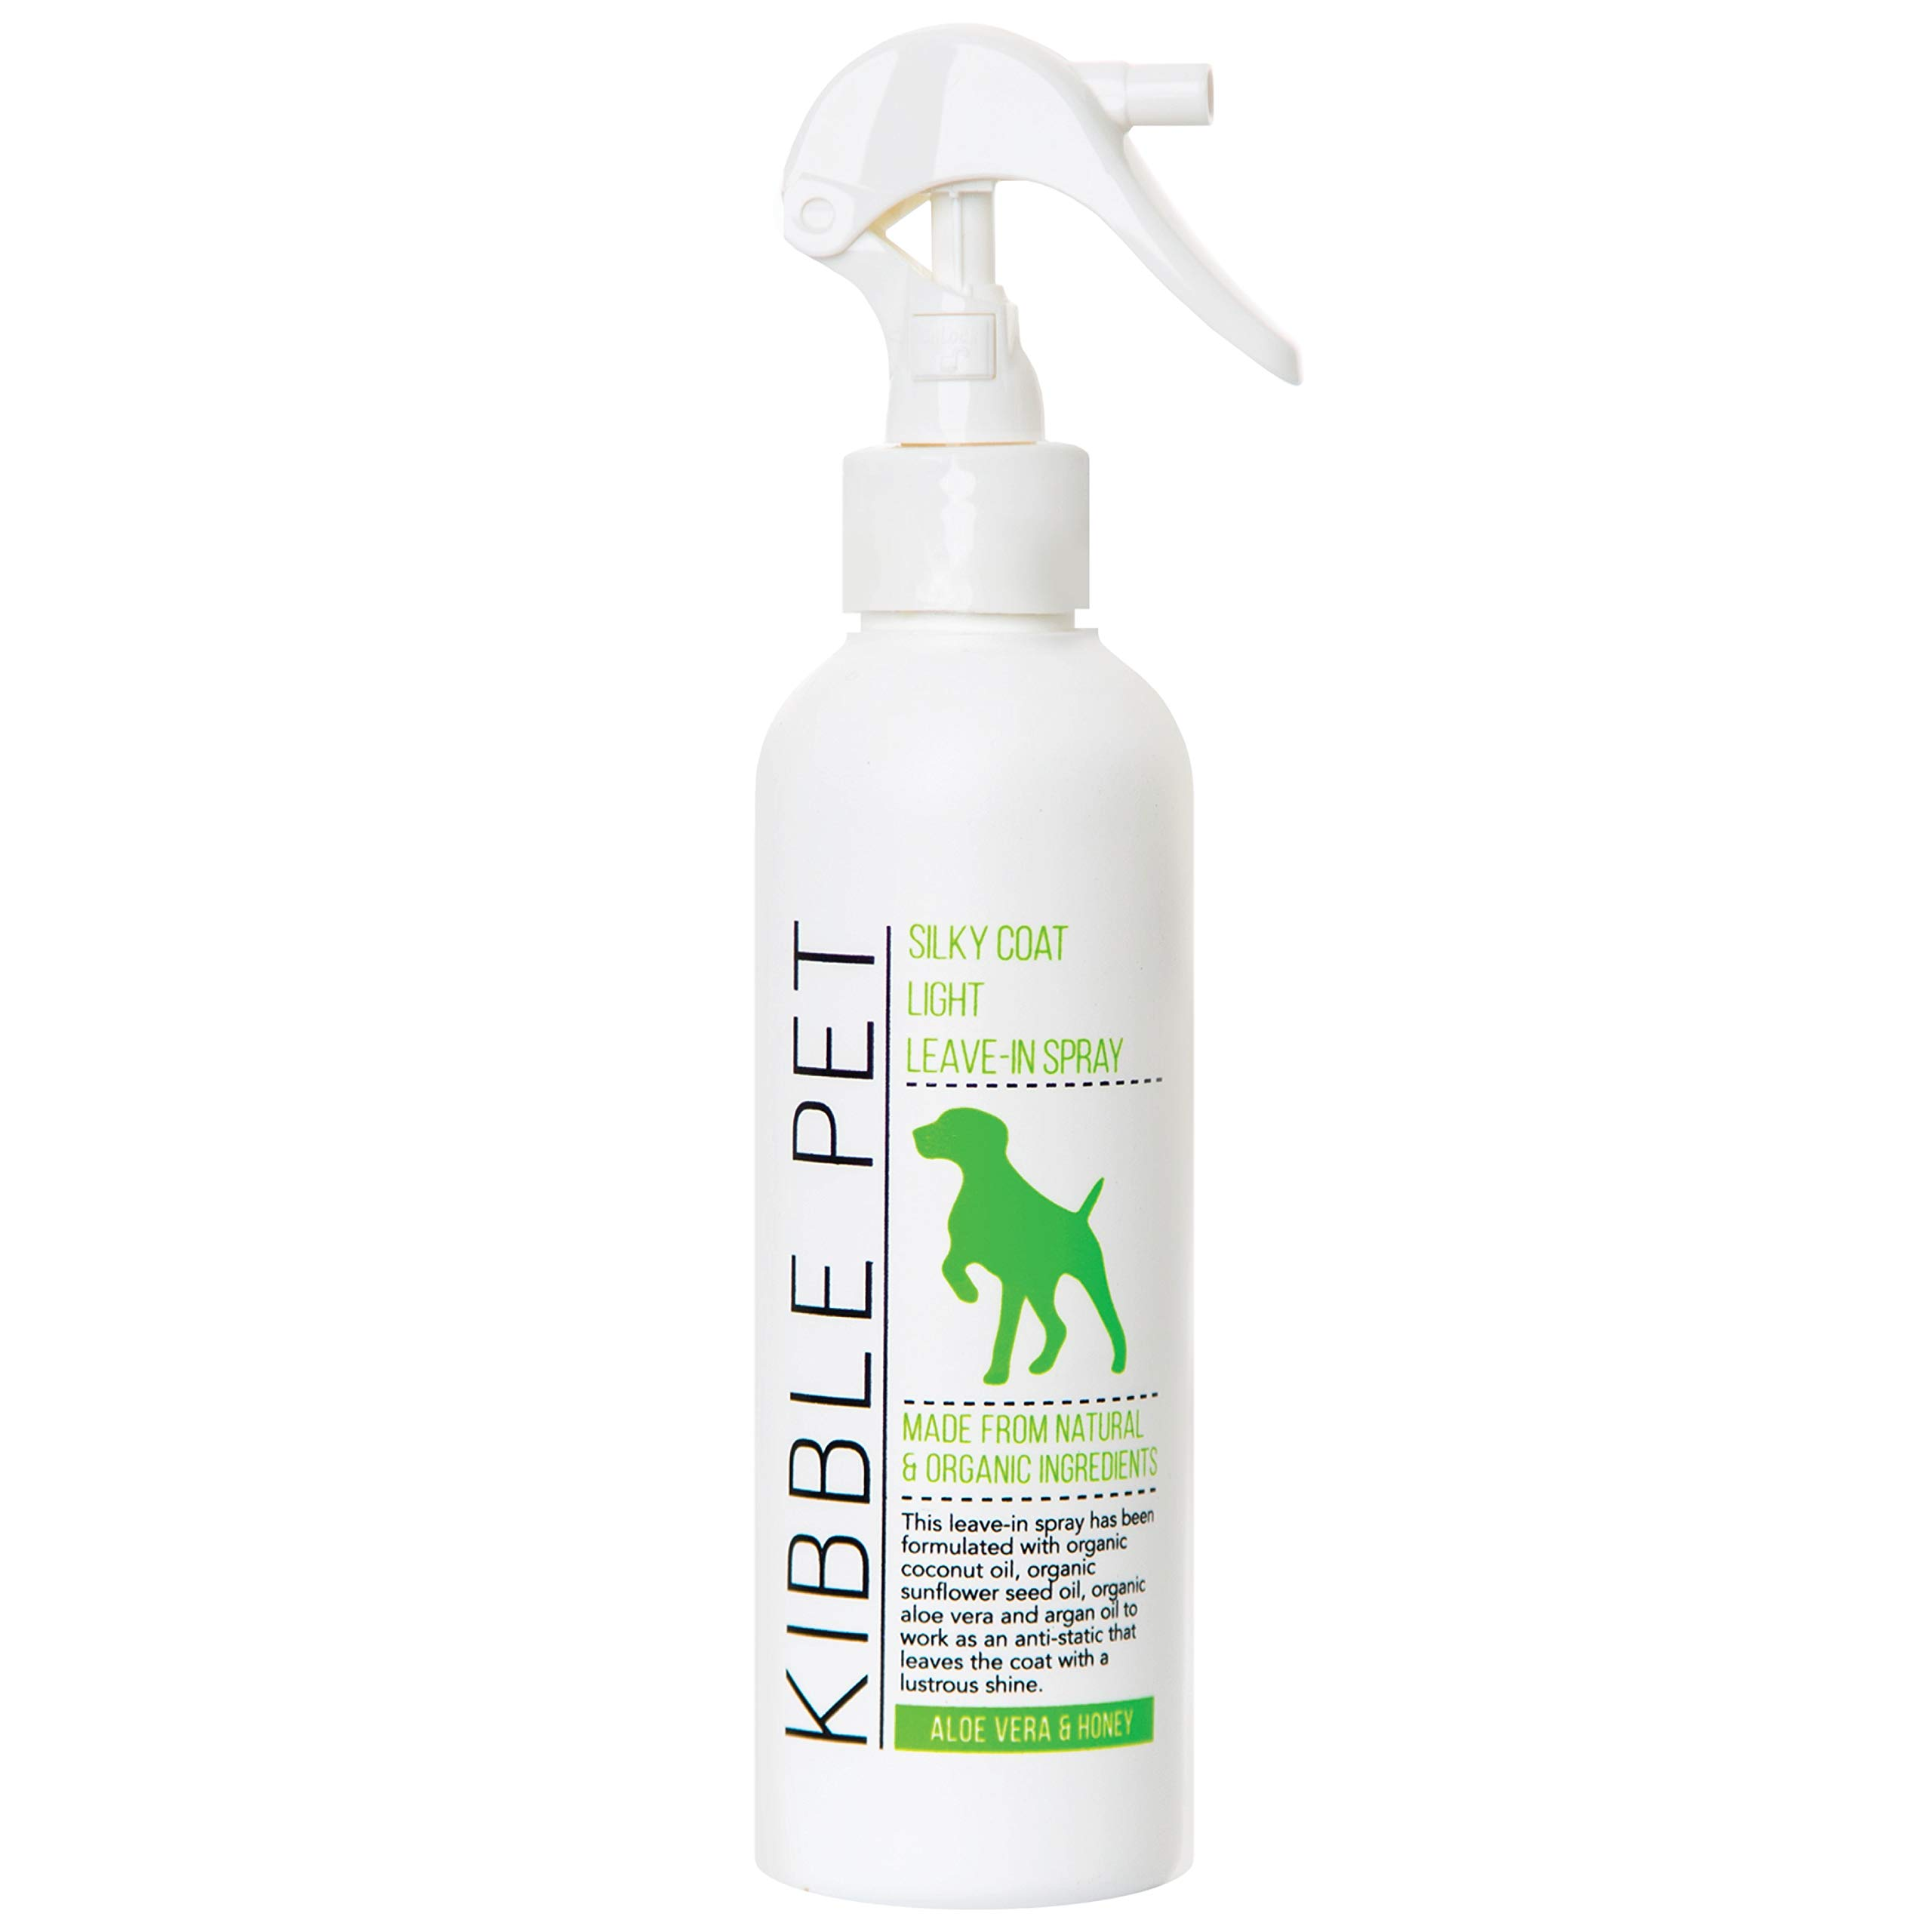 Kibble Pet Salon Quality Silky Coat Light Leave-in Spray Conditioner Hypoallergenic | Made with Natural and Organic Ingredients | Made in The USA | 7.1oz